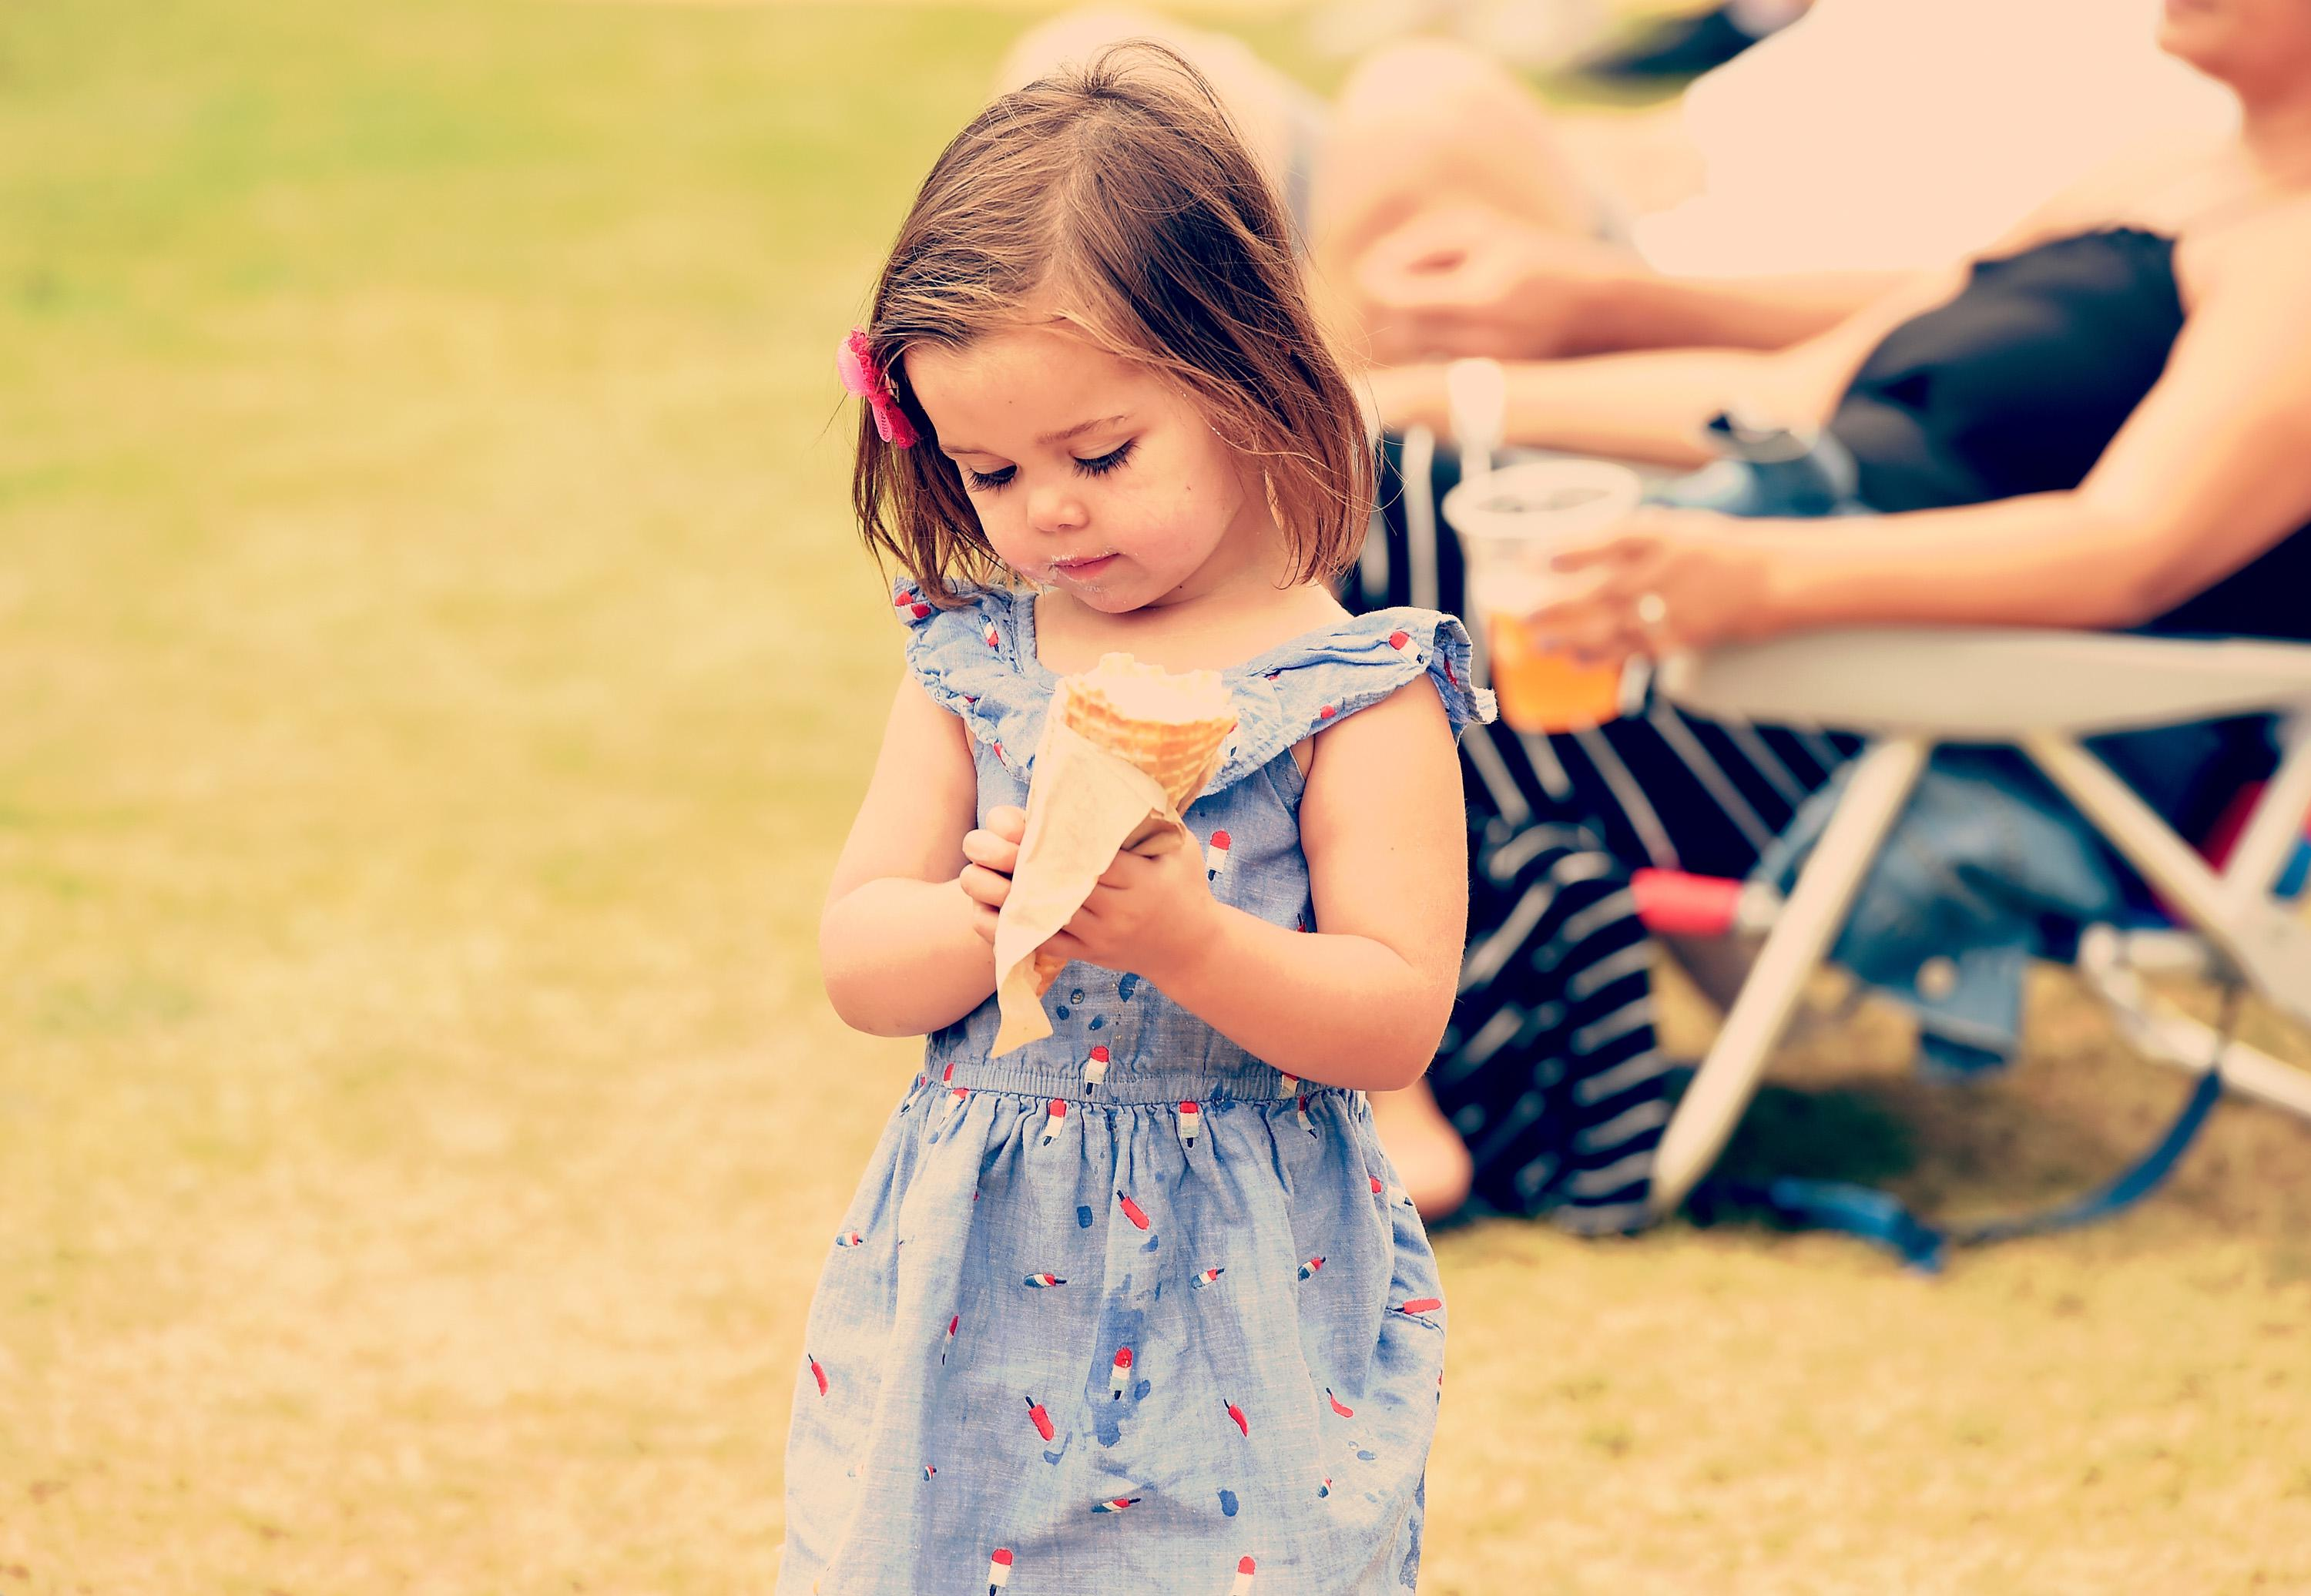 Festival goer eating ice cream at Arroyo Seco Weekend at the Brookside Golf Course at on June 24, 2017 in Pasadena, California.